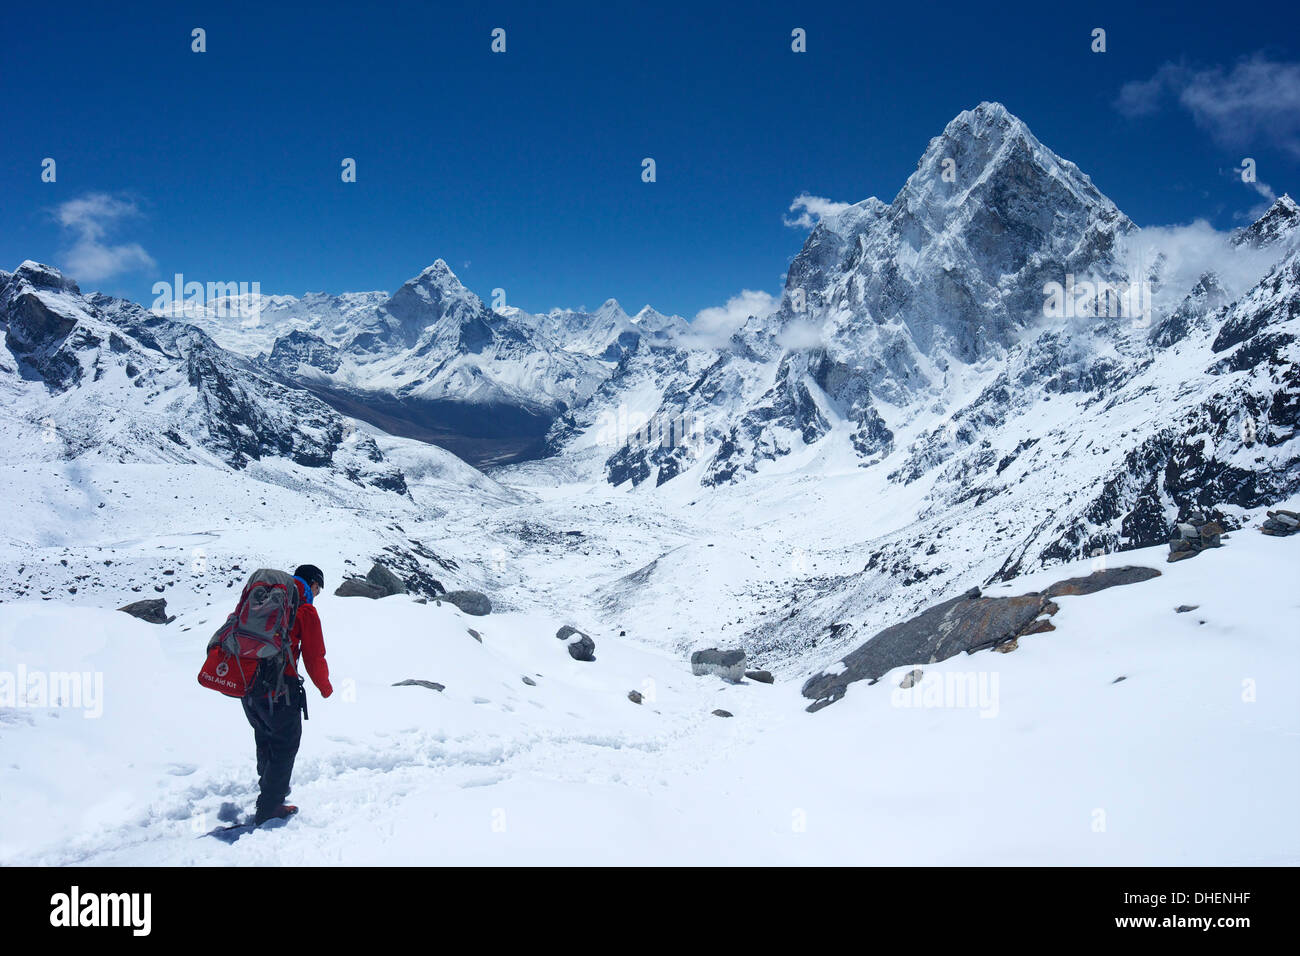 Sherpa guide walking over Cho La Pass with Ama Dablam on left and Arakam Tse on right side, Nepal, Himalayas - Stock Image